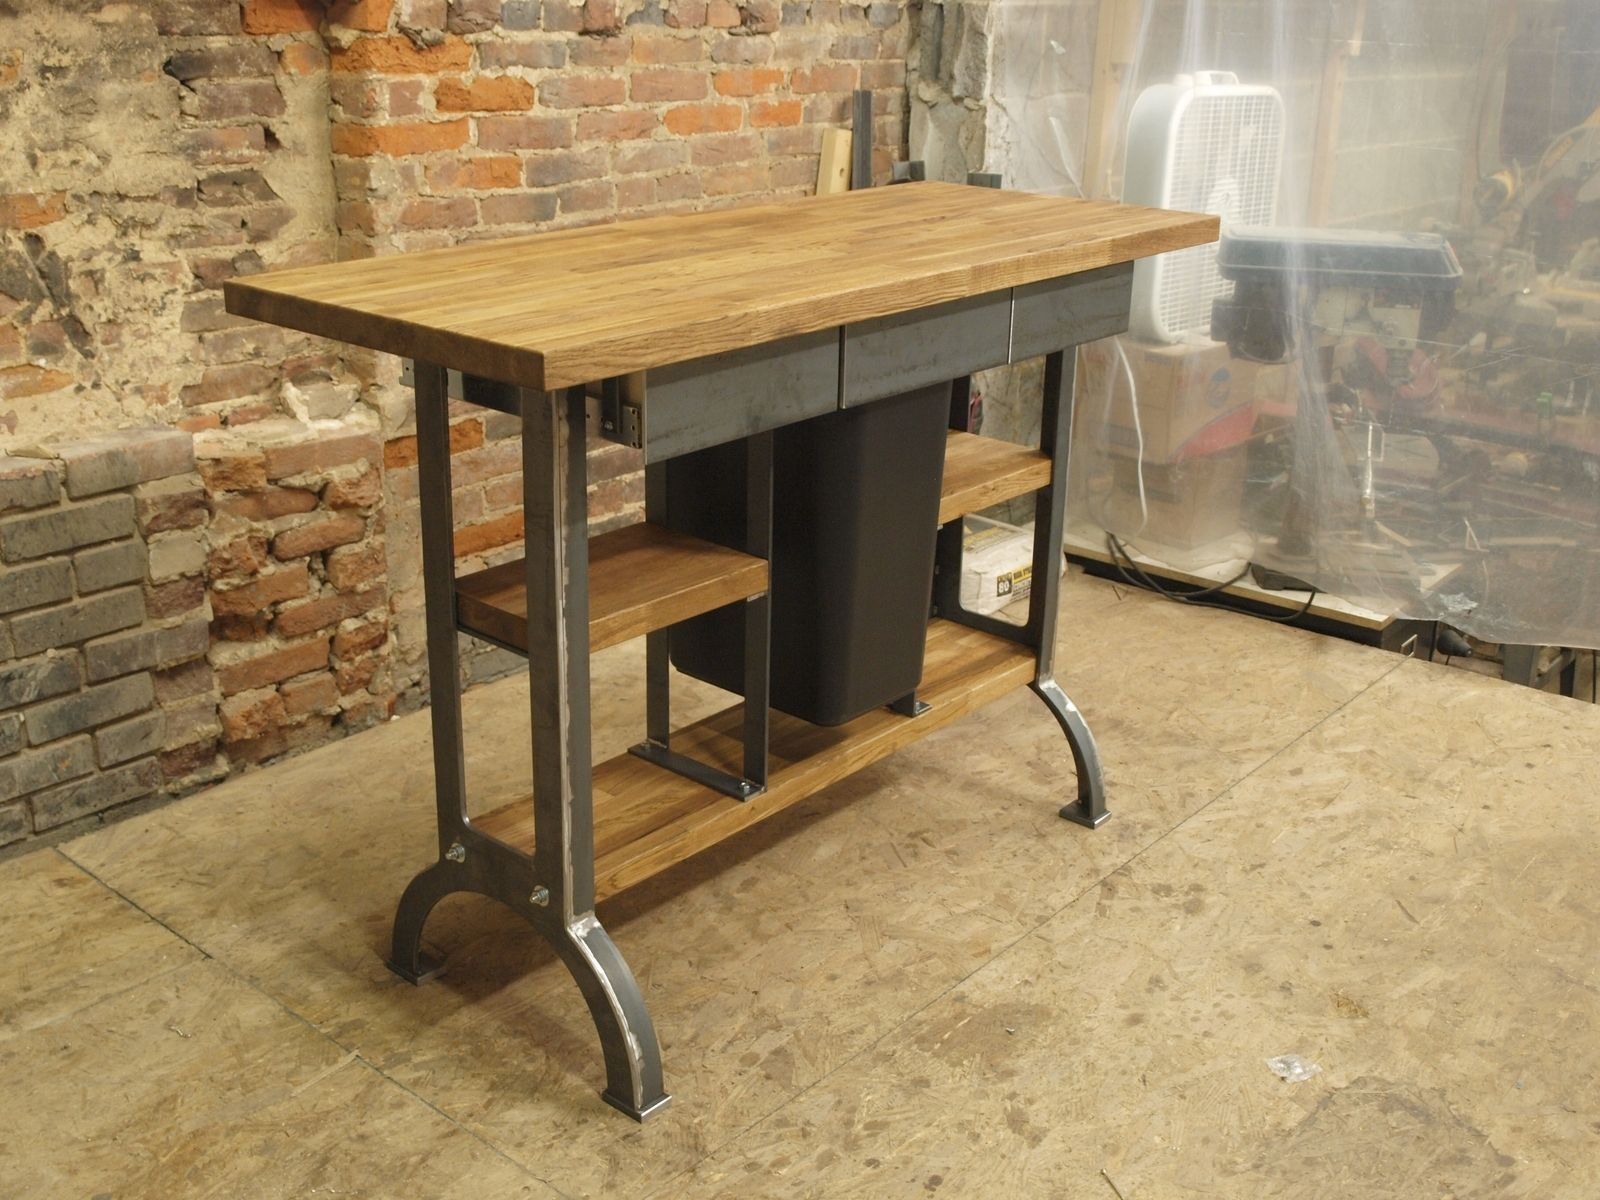 Kitchen prep table marble - Modern Industrial Kitchen Island Console Table